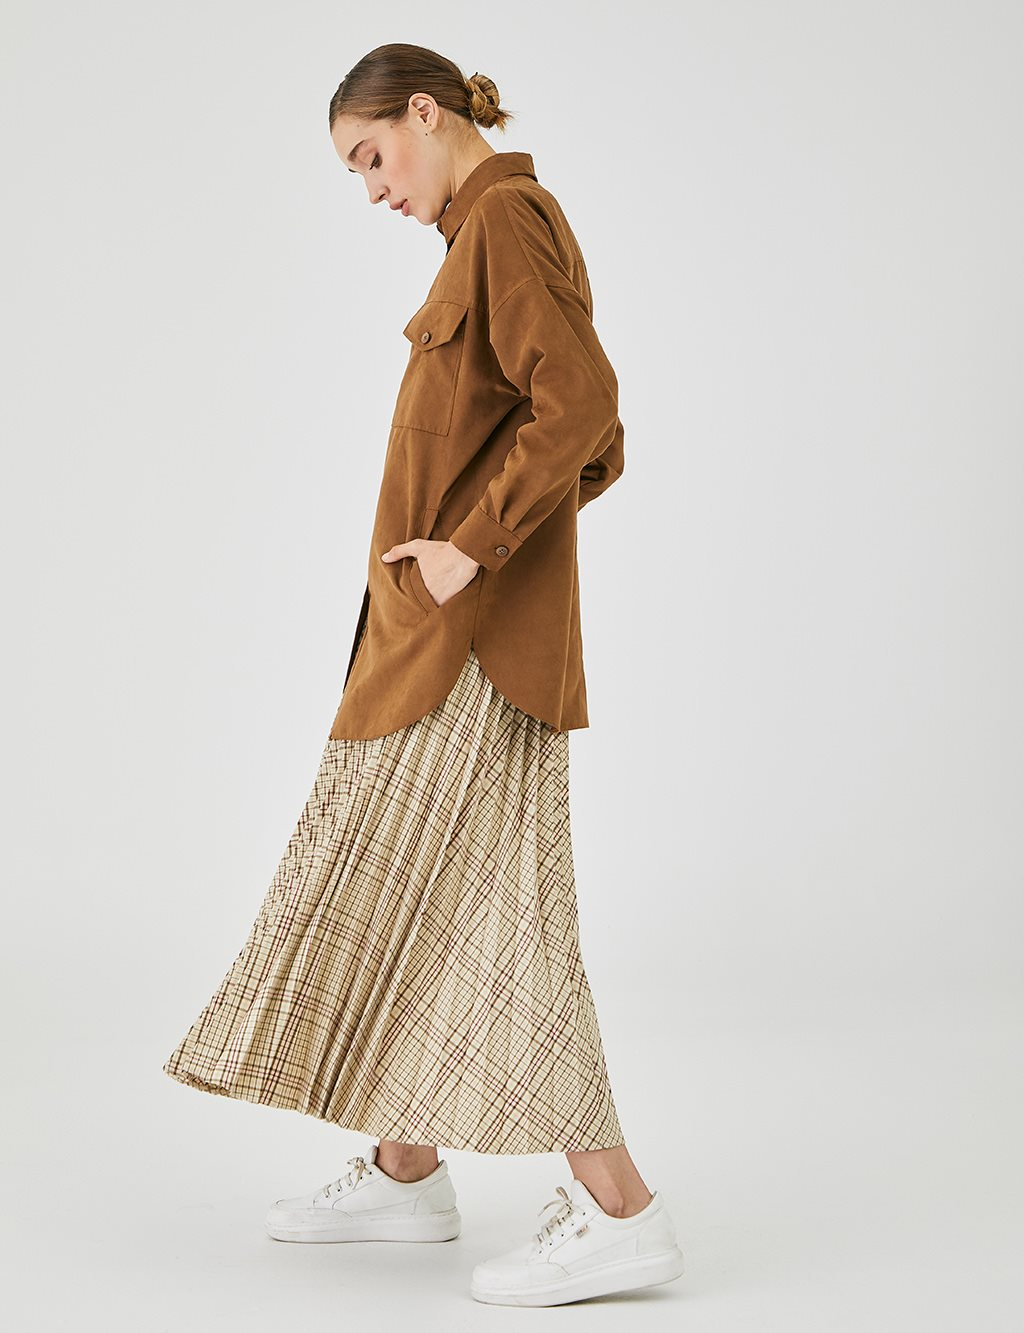 Oversized Suede Tunic With Double Pocket A20 21013 Cinnamon